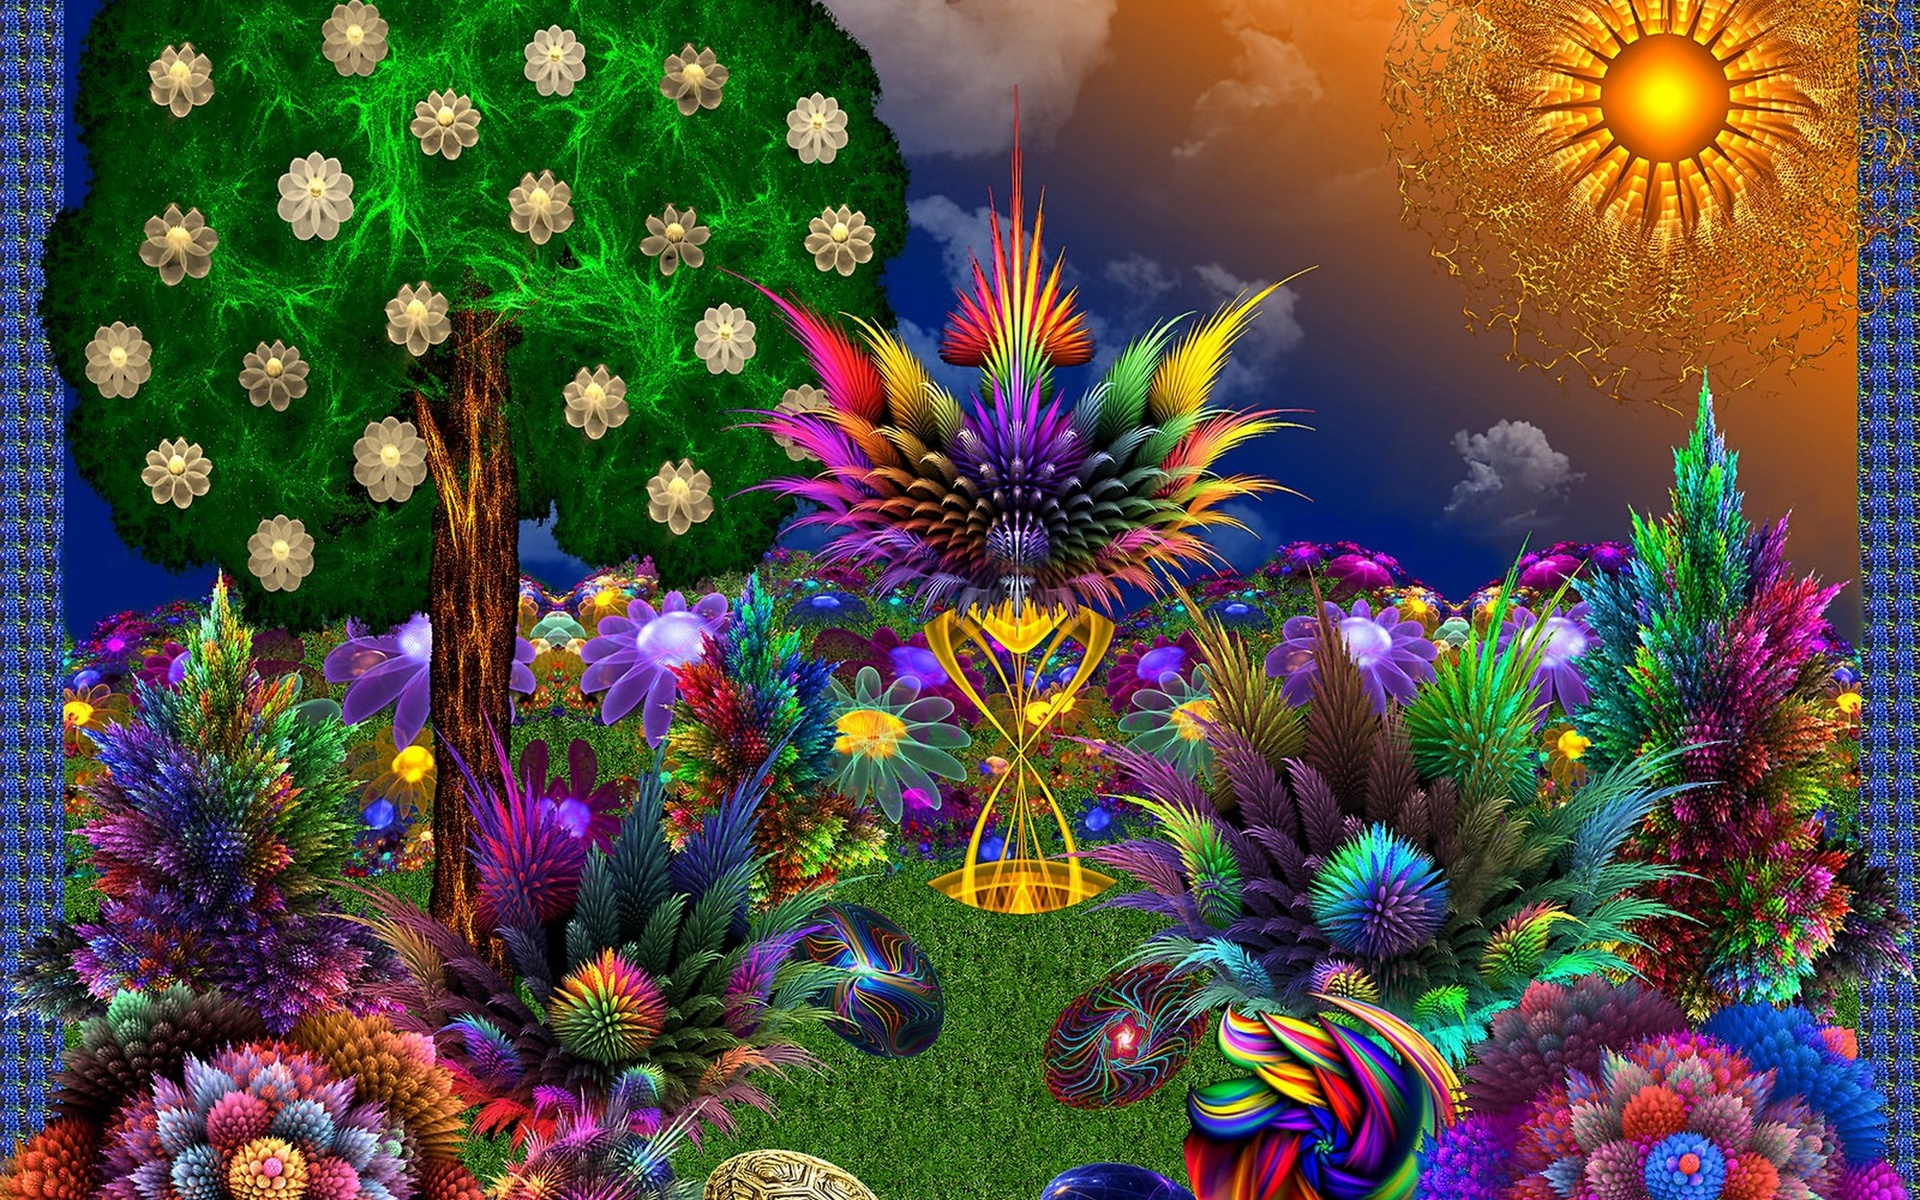 Best 3d Live Wallpaper Android 2015 Rainbow Butterfly Hd Wallpaper Hd Latest Wallpapers